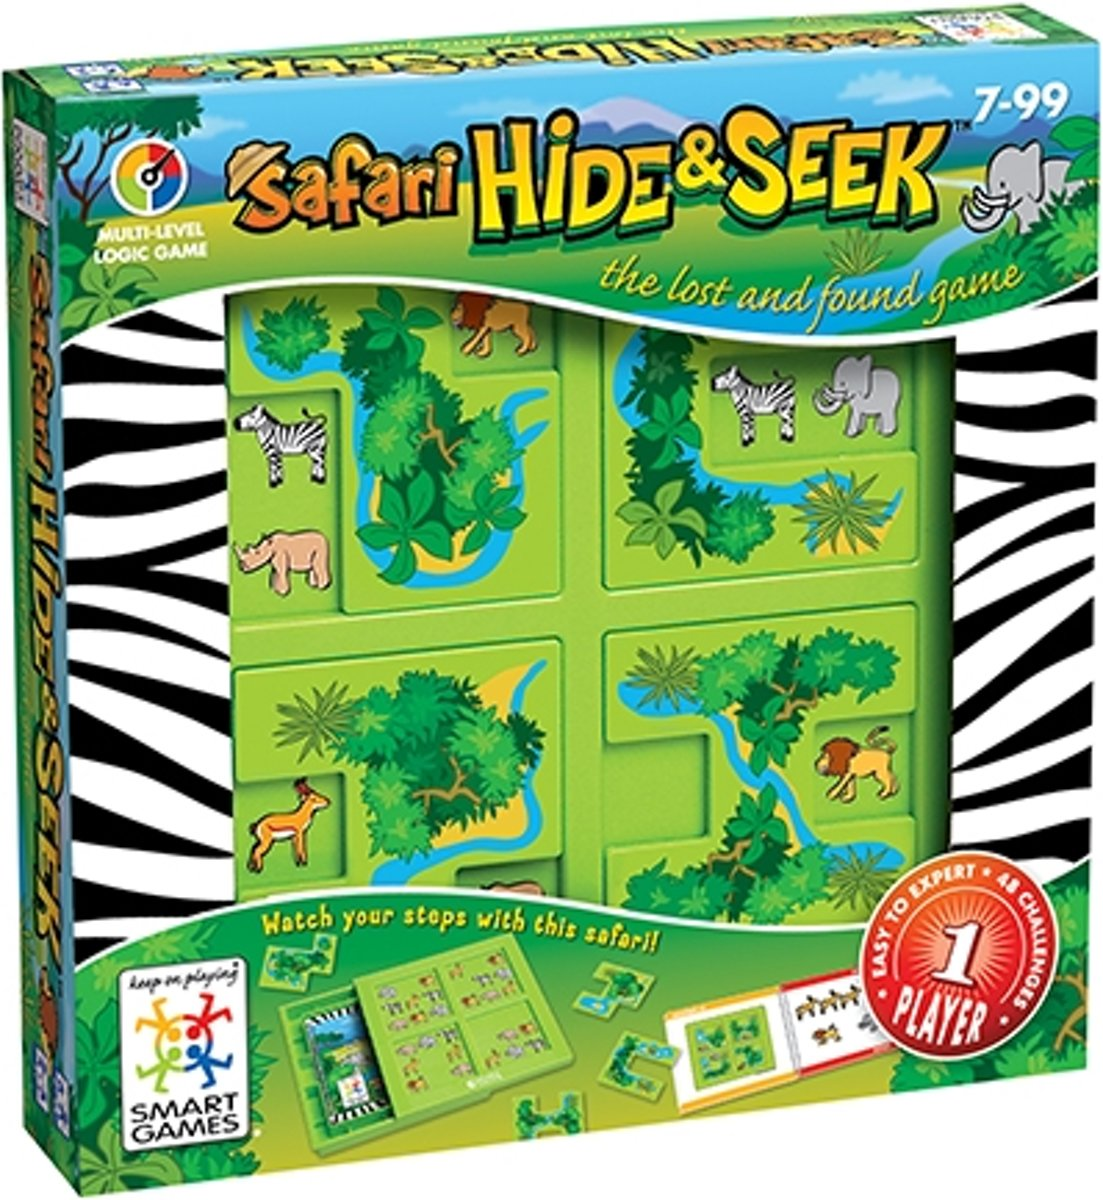 Smart Games spel Hide & Seek - Safari